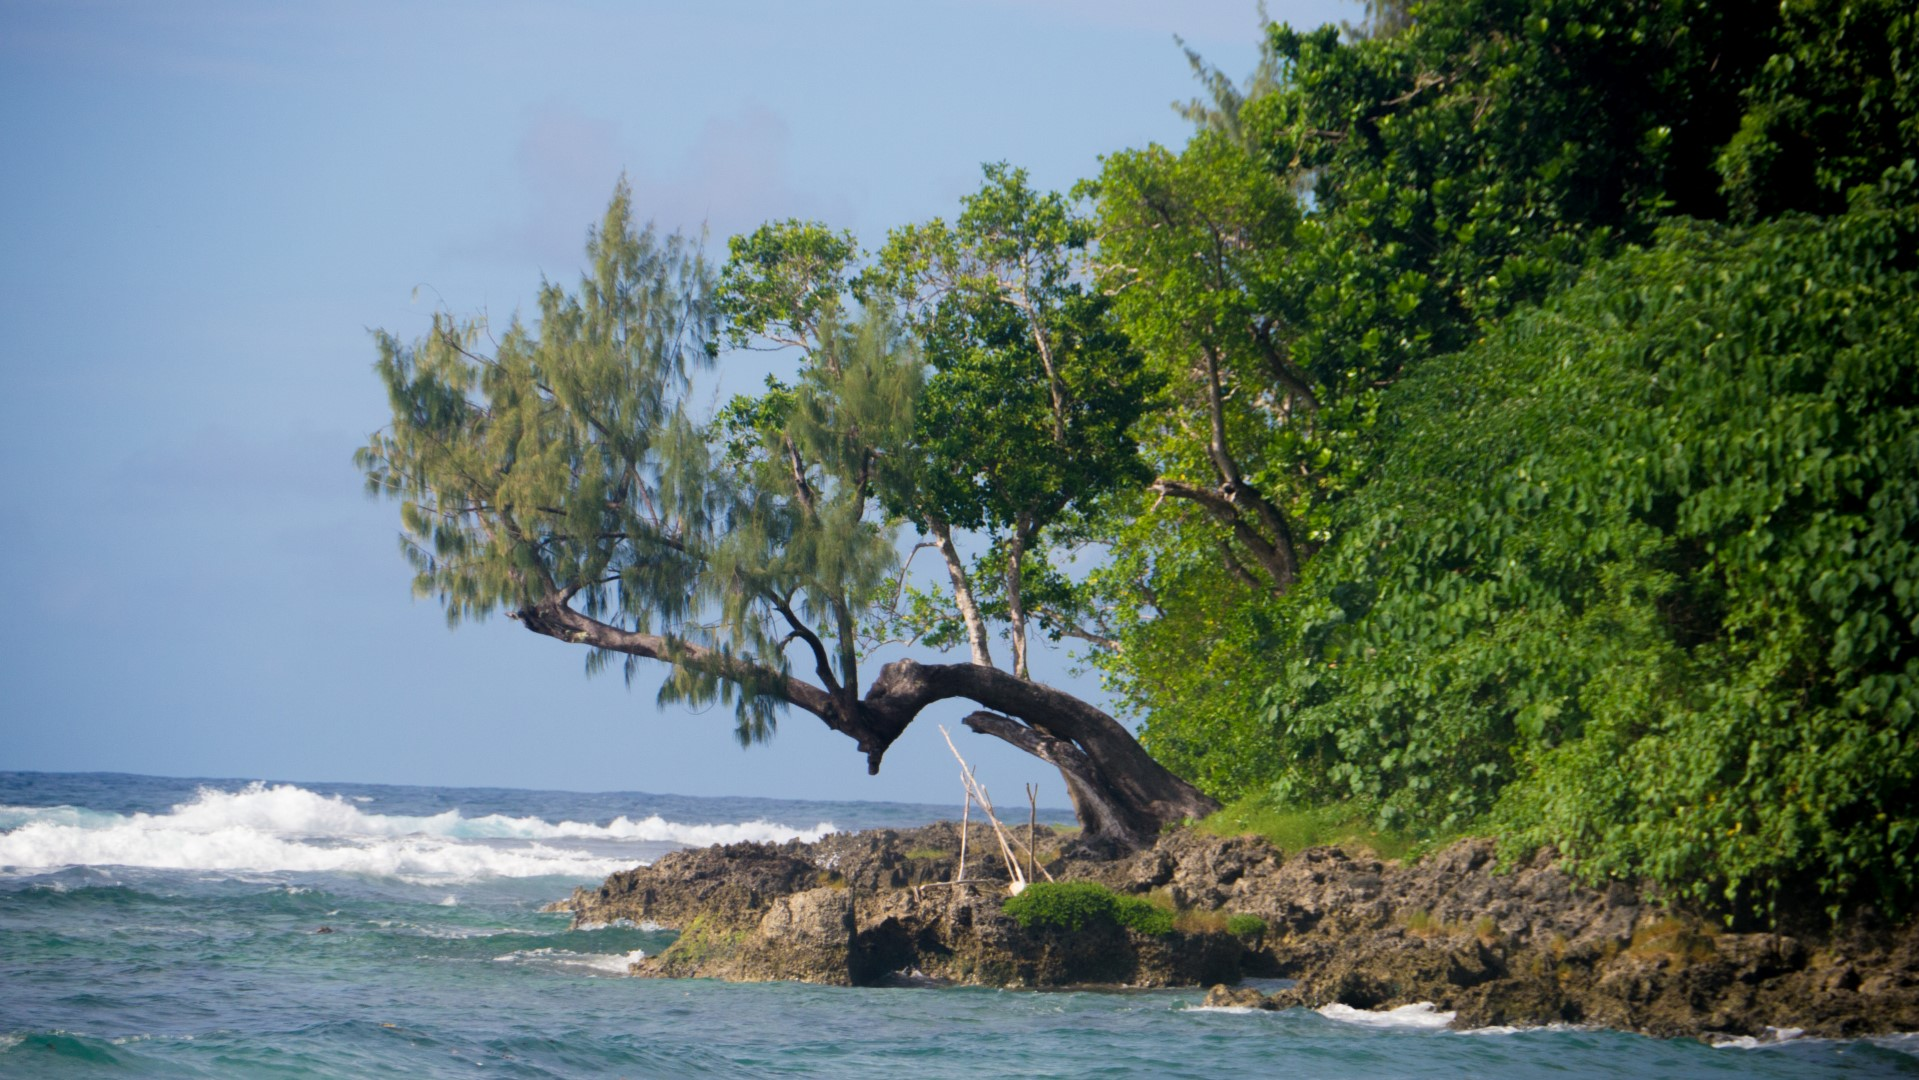 VK, South Pacific & Indian Ocean Expeditions